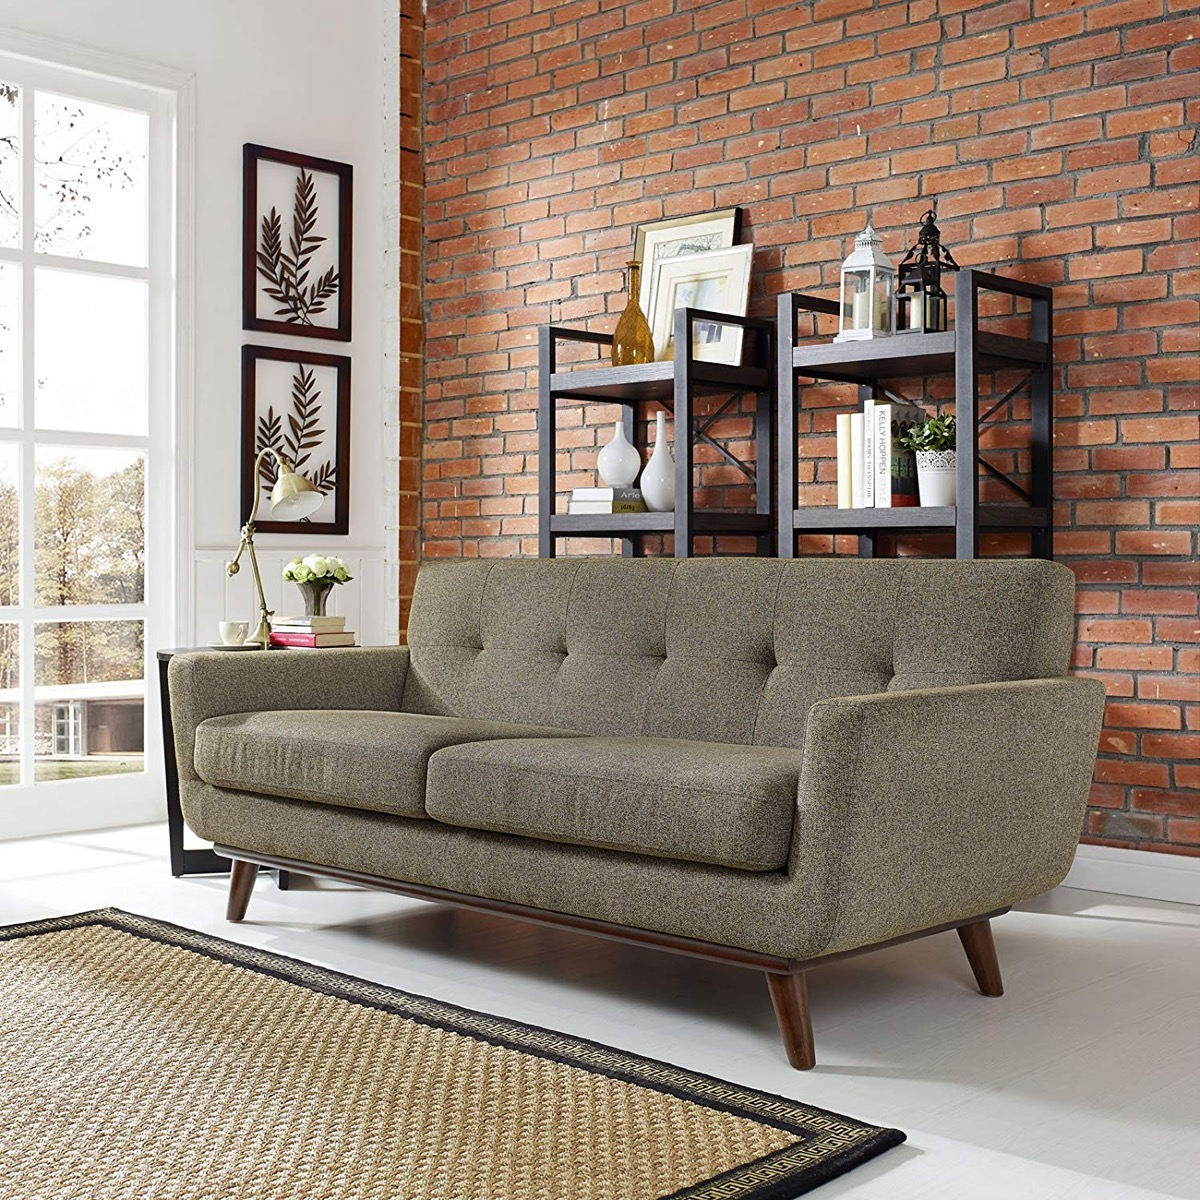 oatmeal-fabric-tufted-loveseat-for-modern-homes